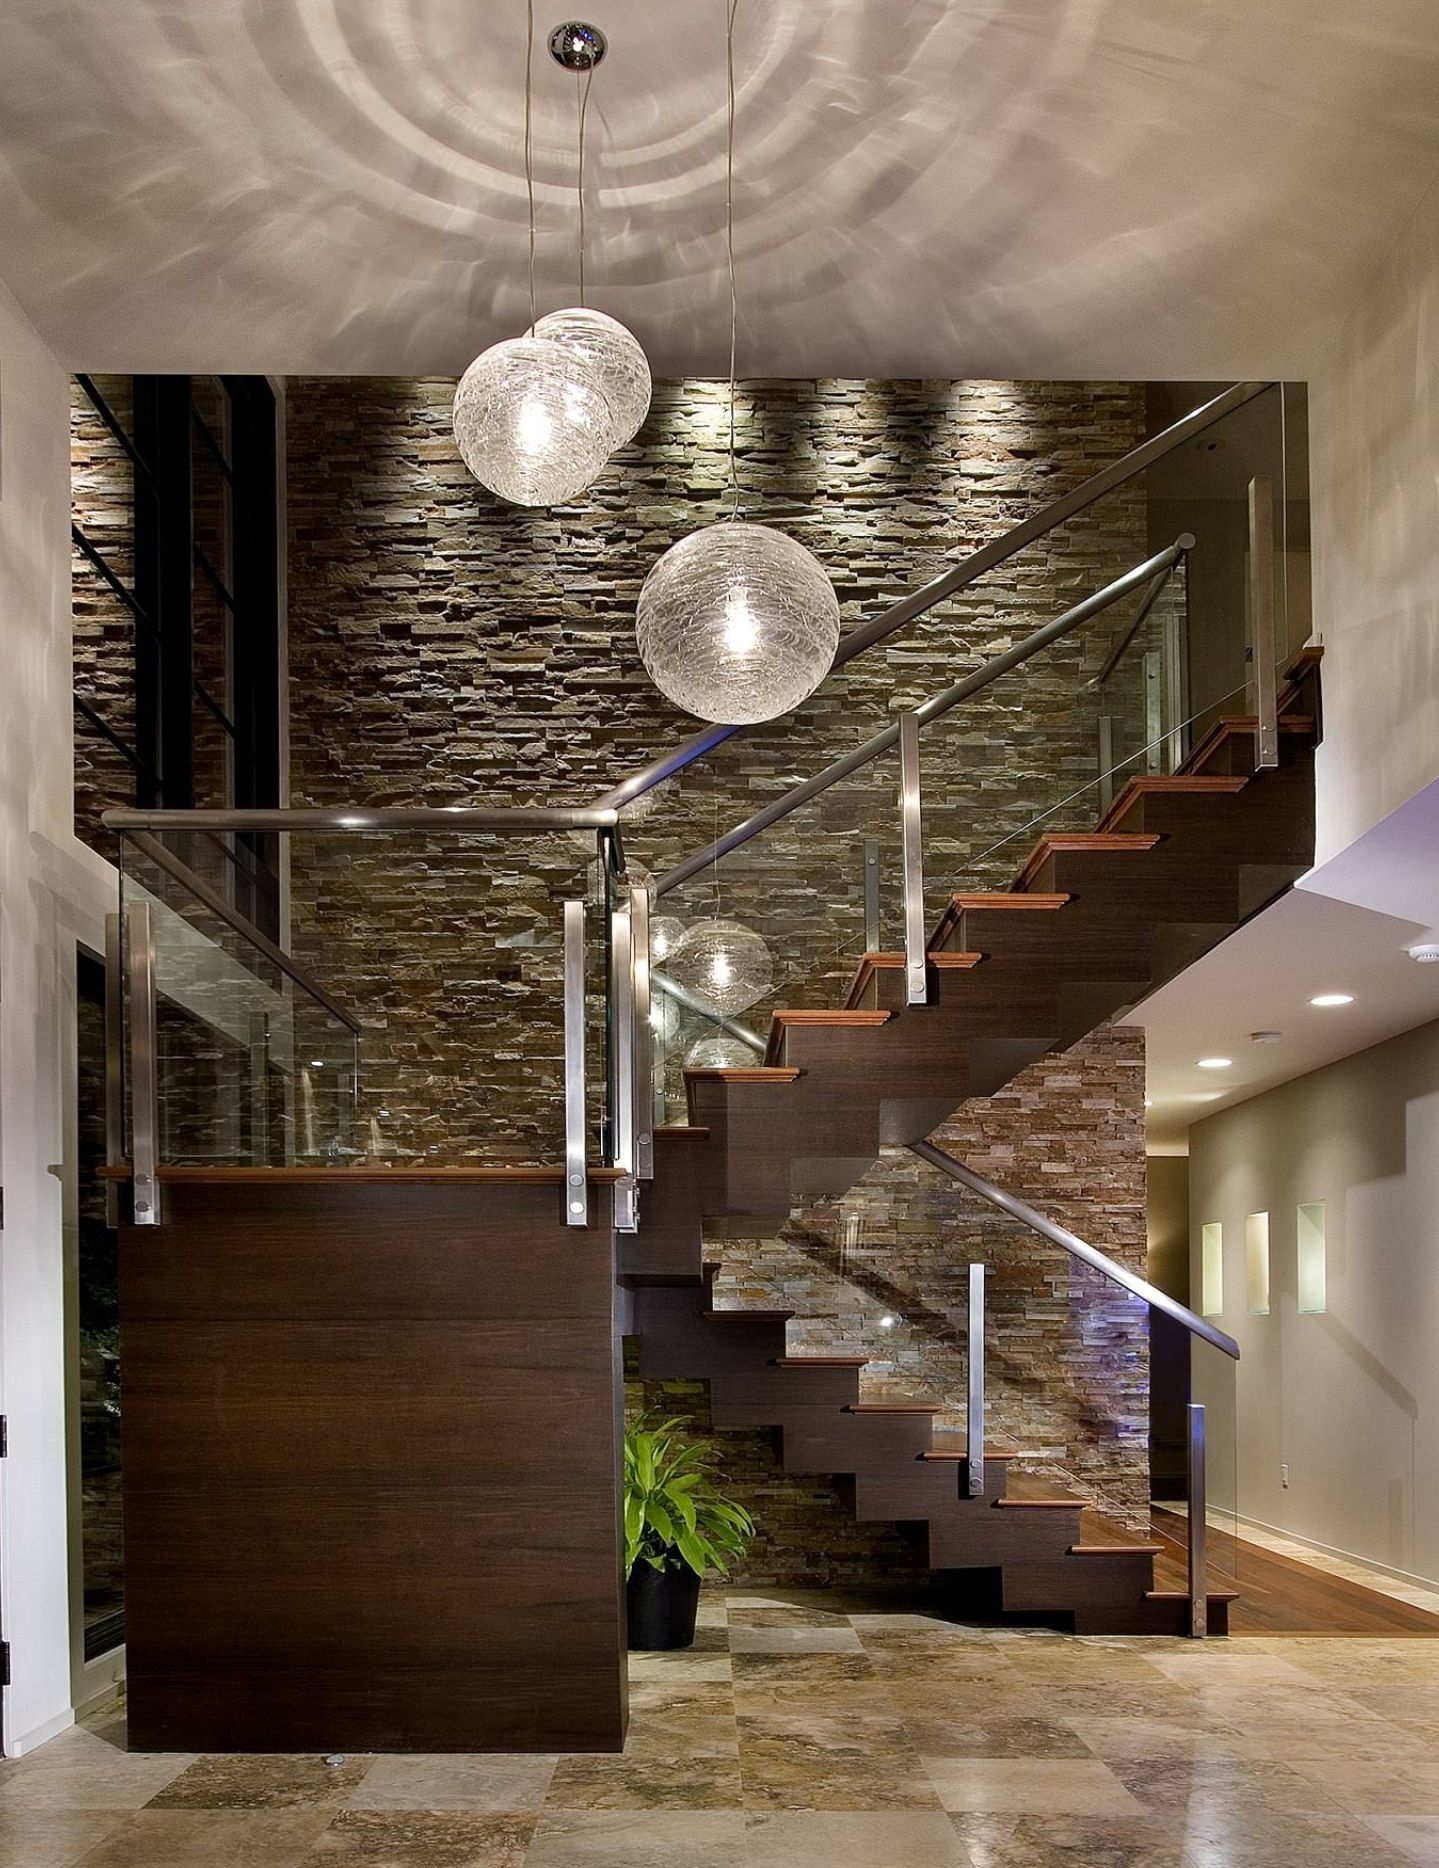 Extra high ceilings, glass stairwell, long chandeliers, enters ...